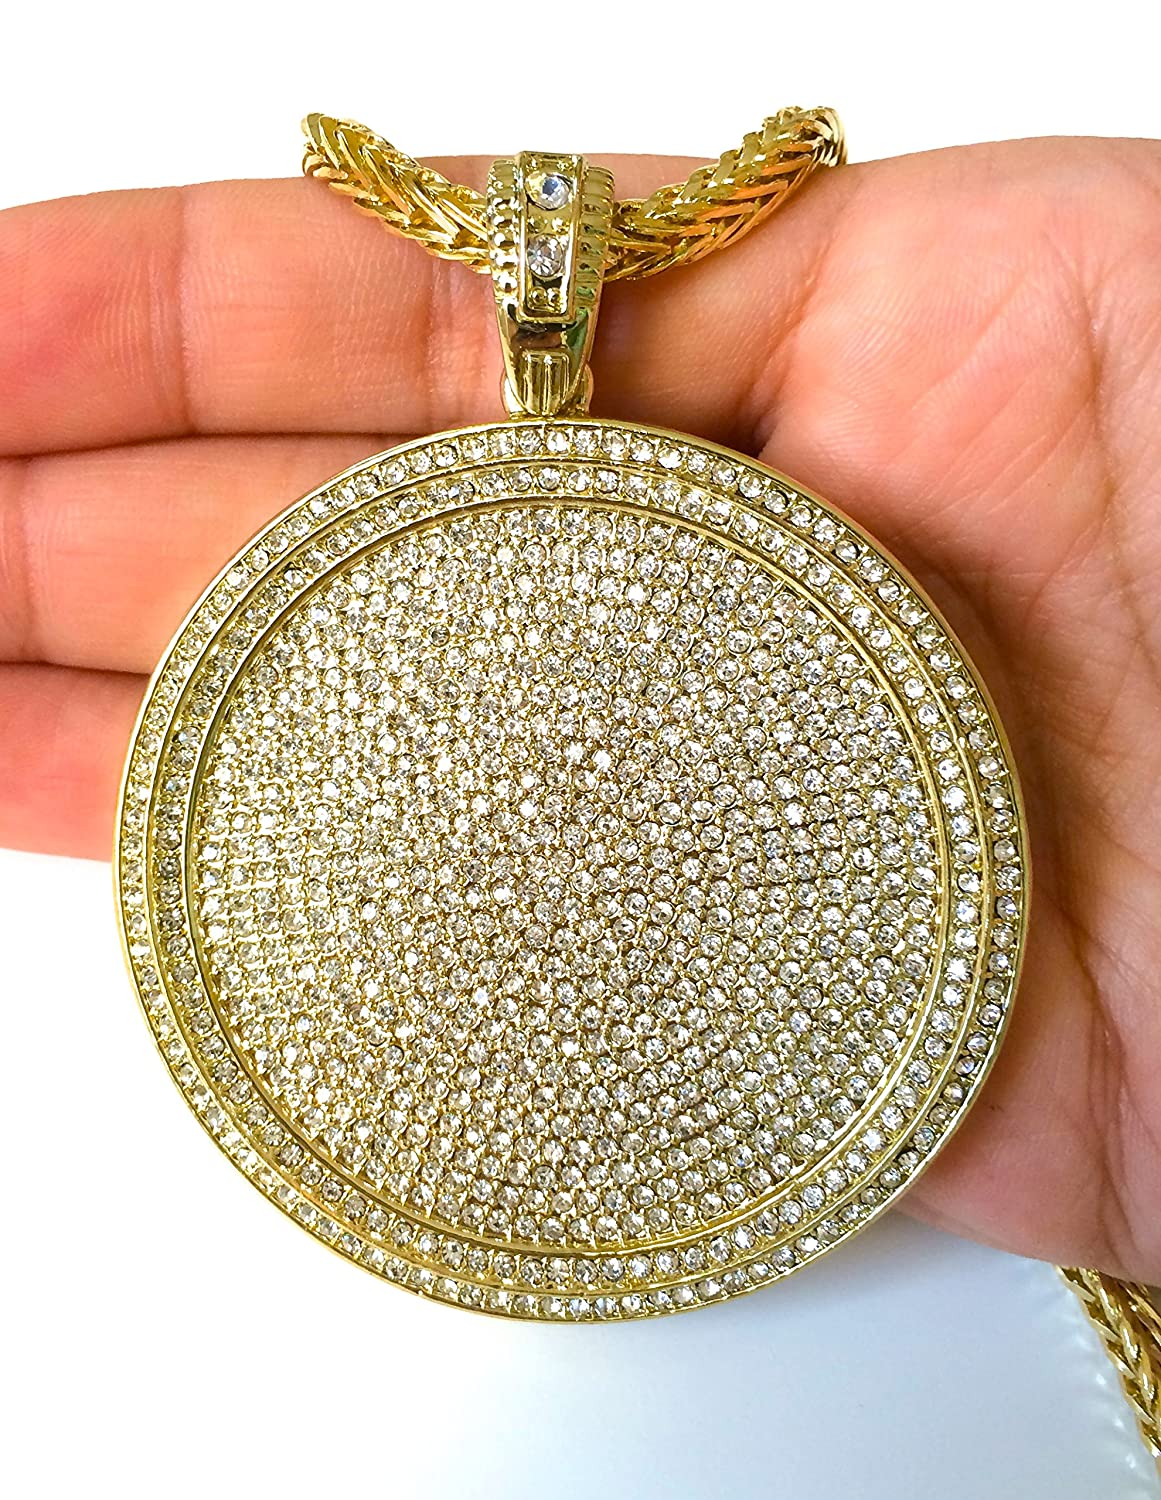 pendant mens greek chain jewelry medallion com cuban god link necklace amazon rapper inch gold dp